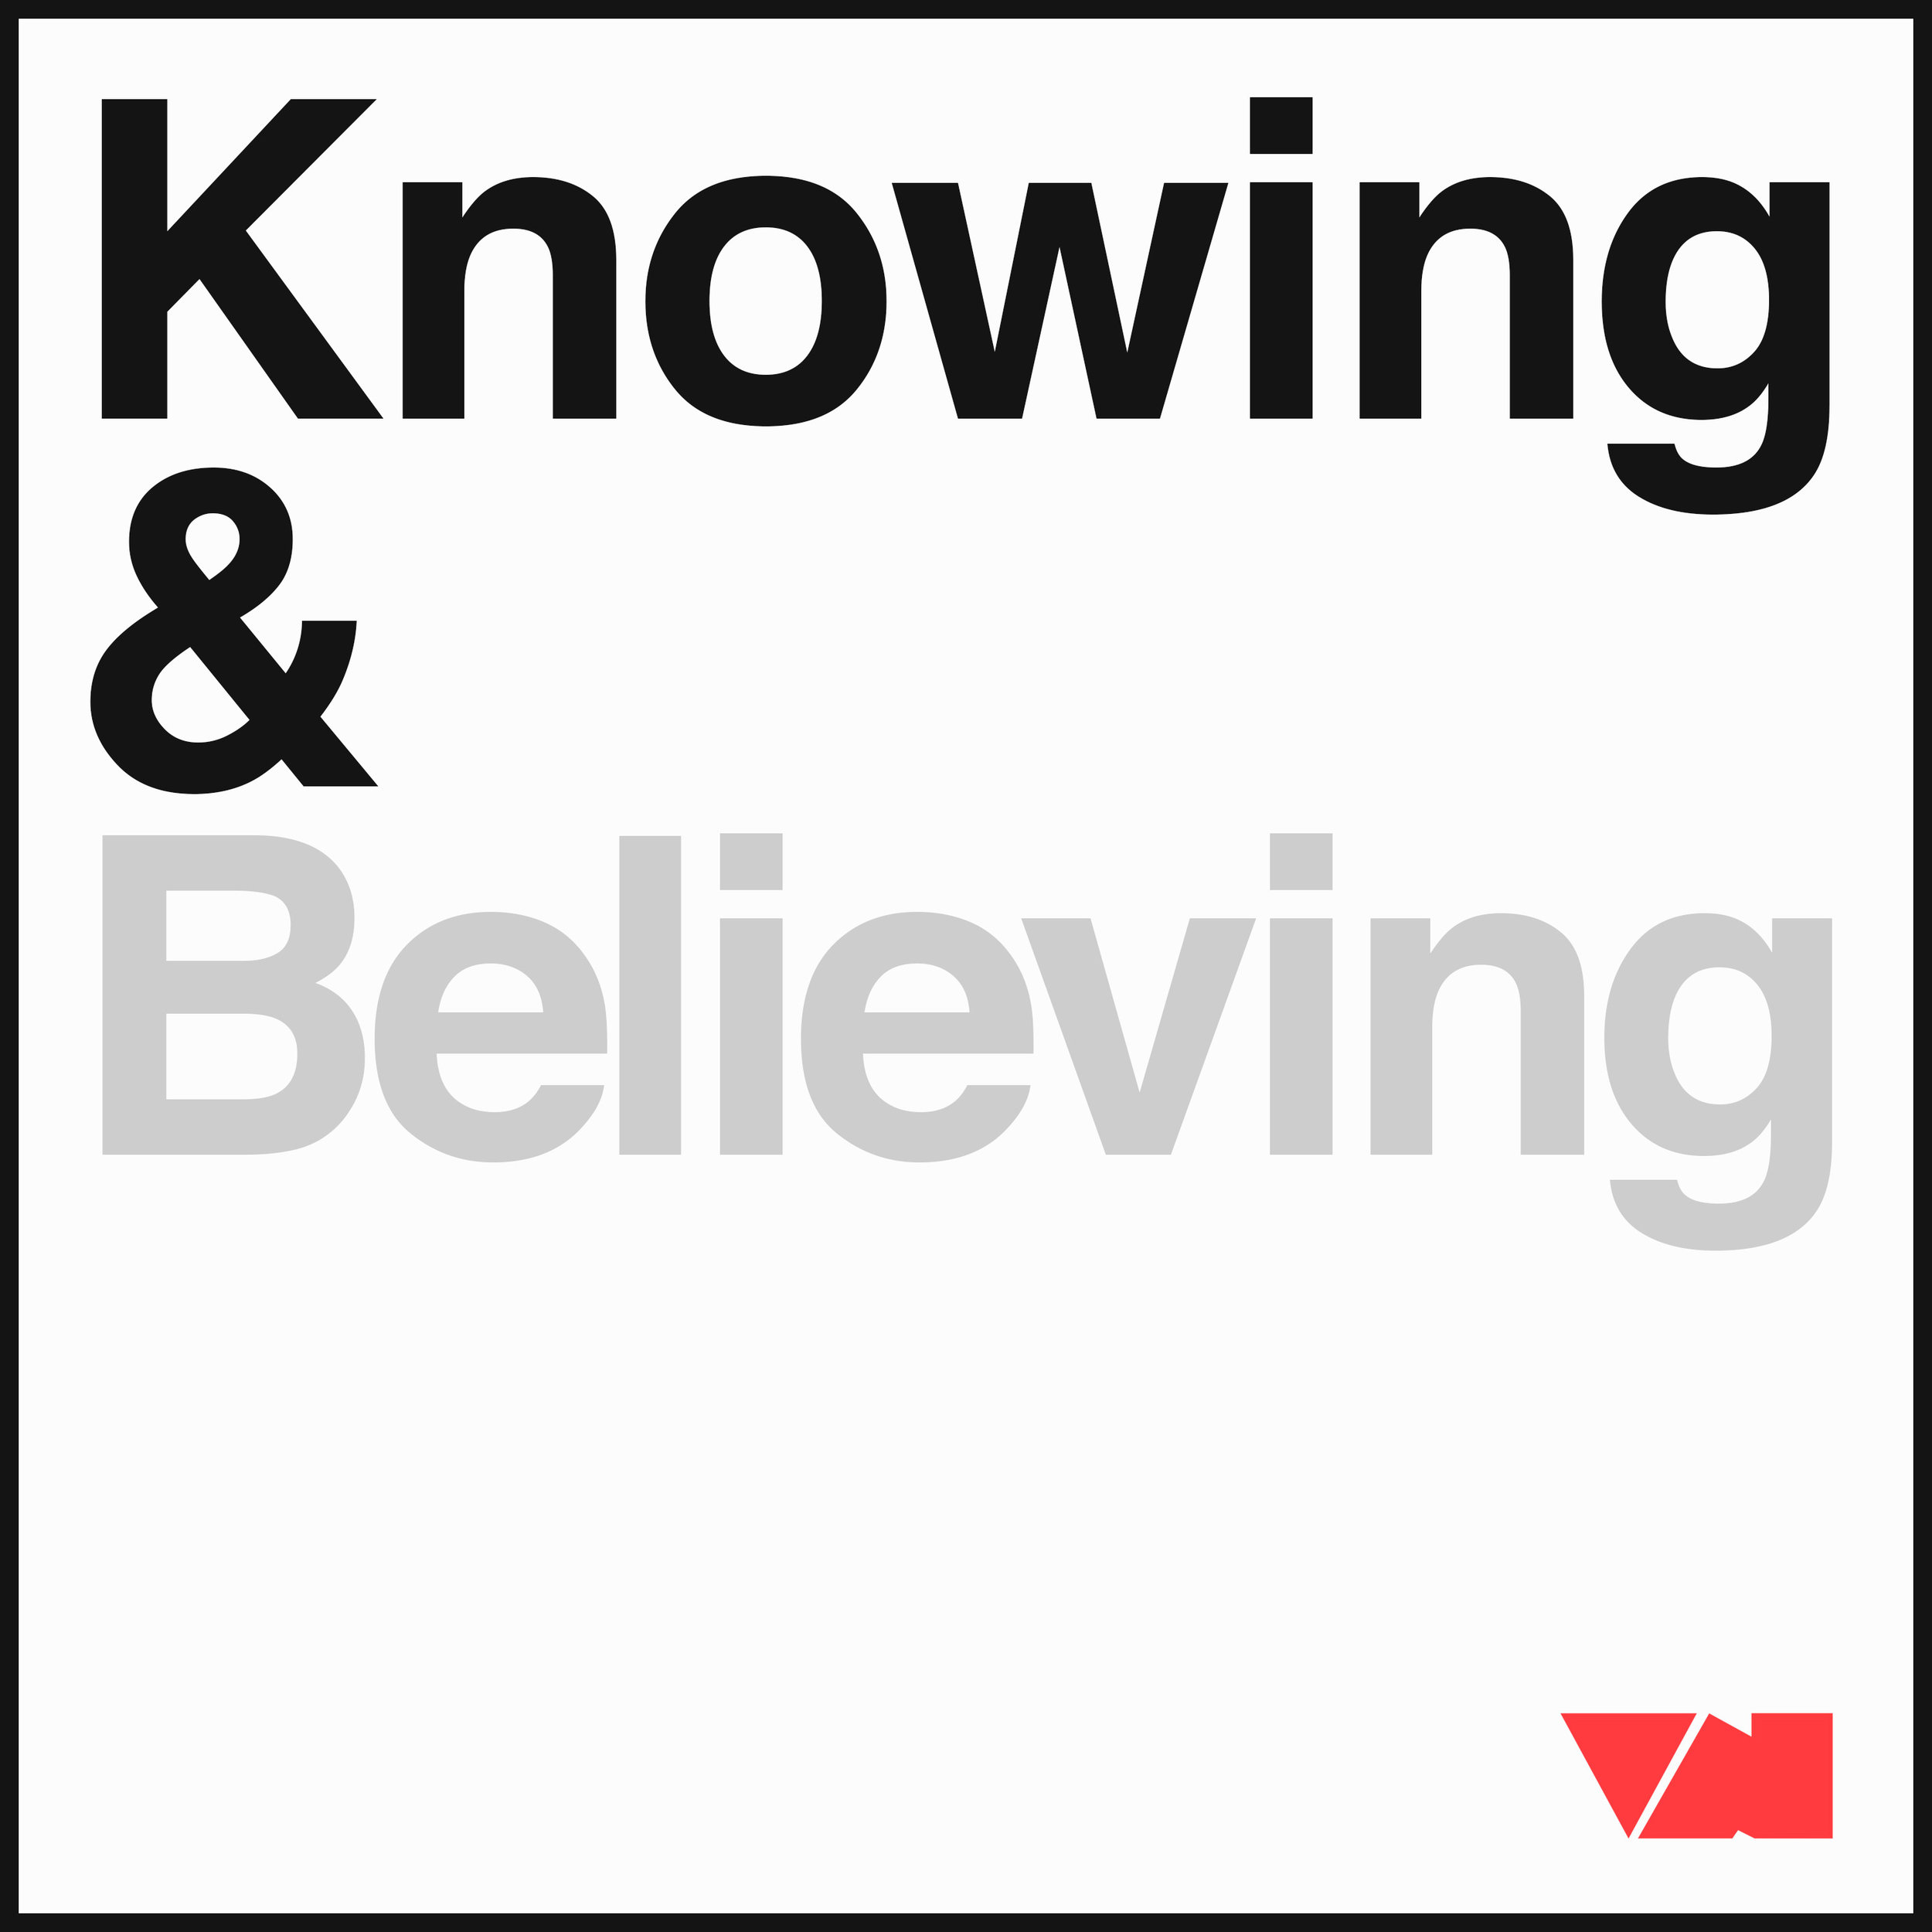 Knowing_Believing_Podcast_Artwork_Border.jpg